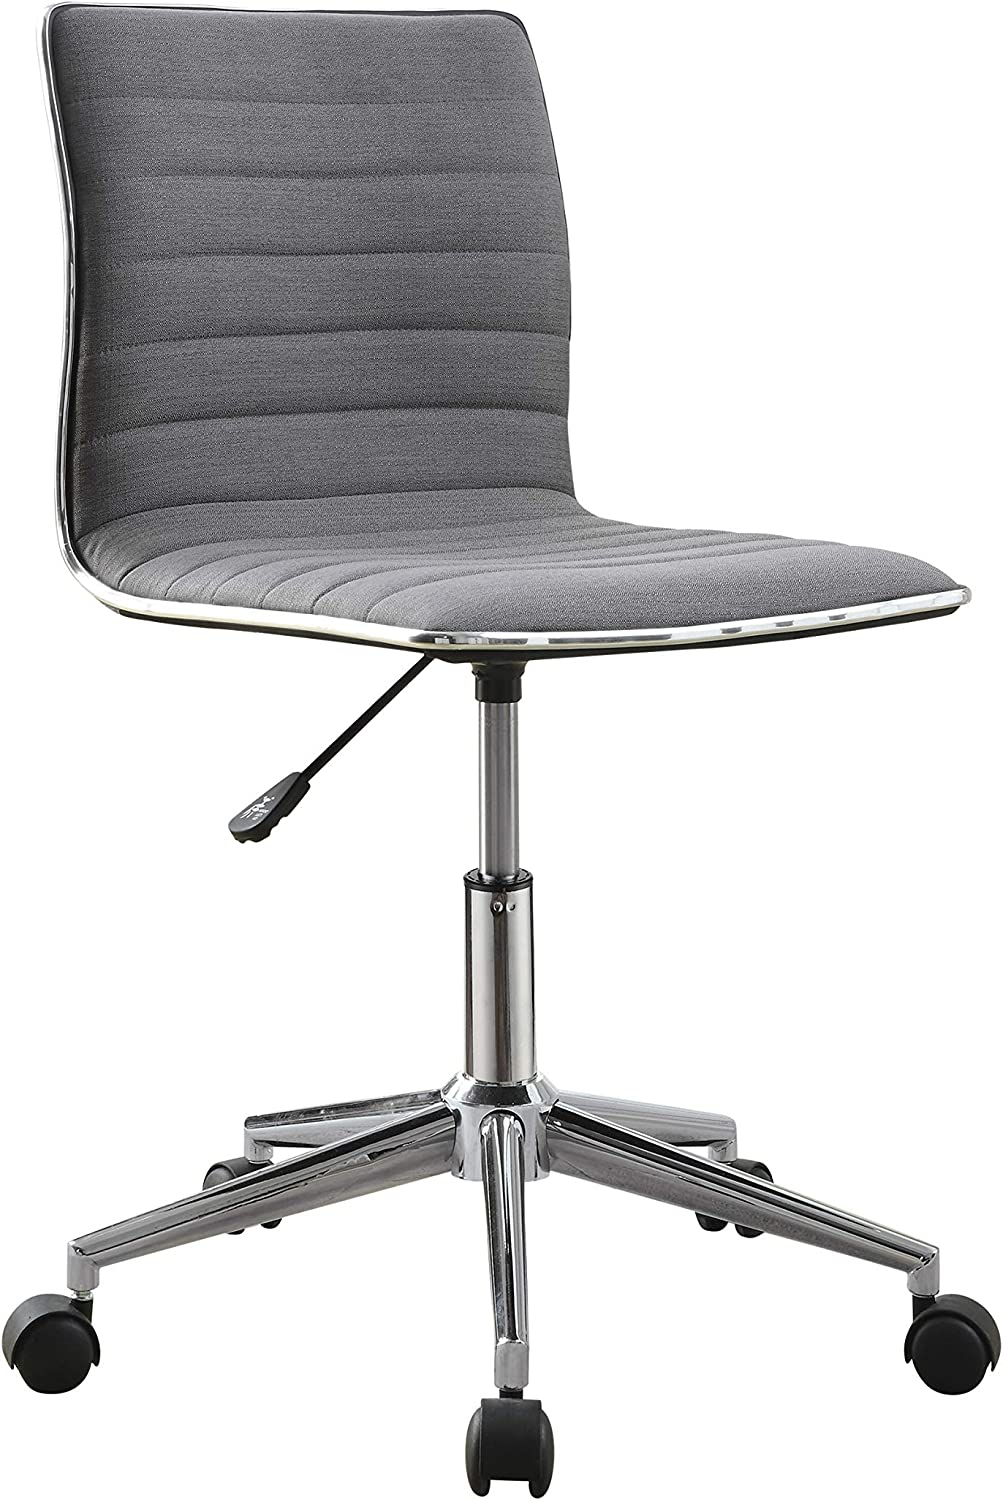 Coaster Home Furnishings Adjustable Height Office Chair Grey and Chrome